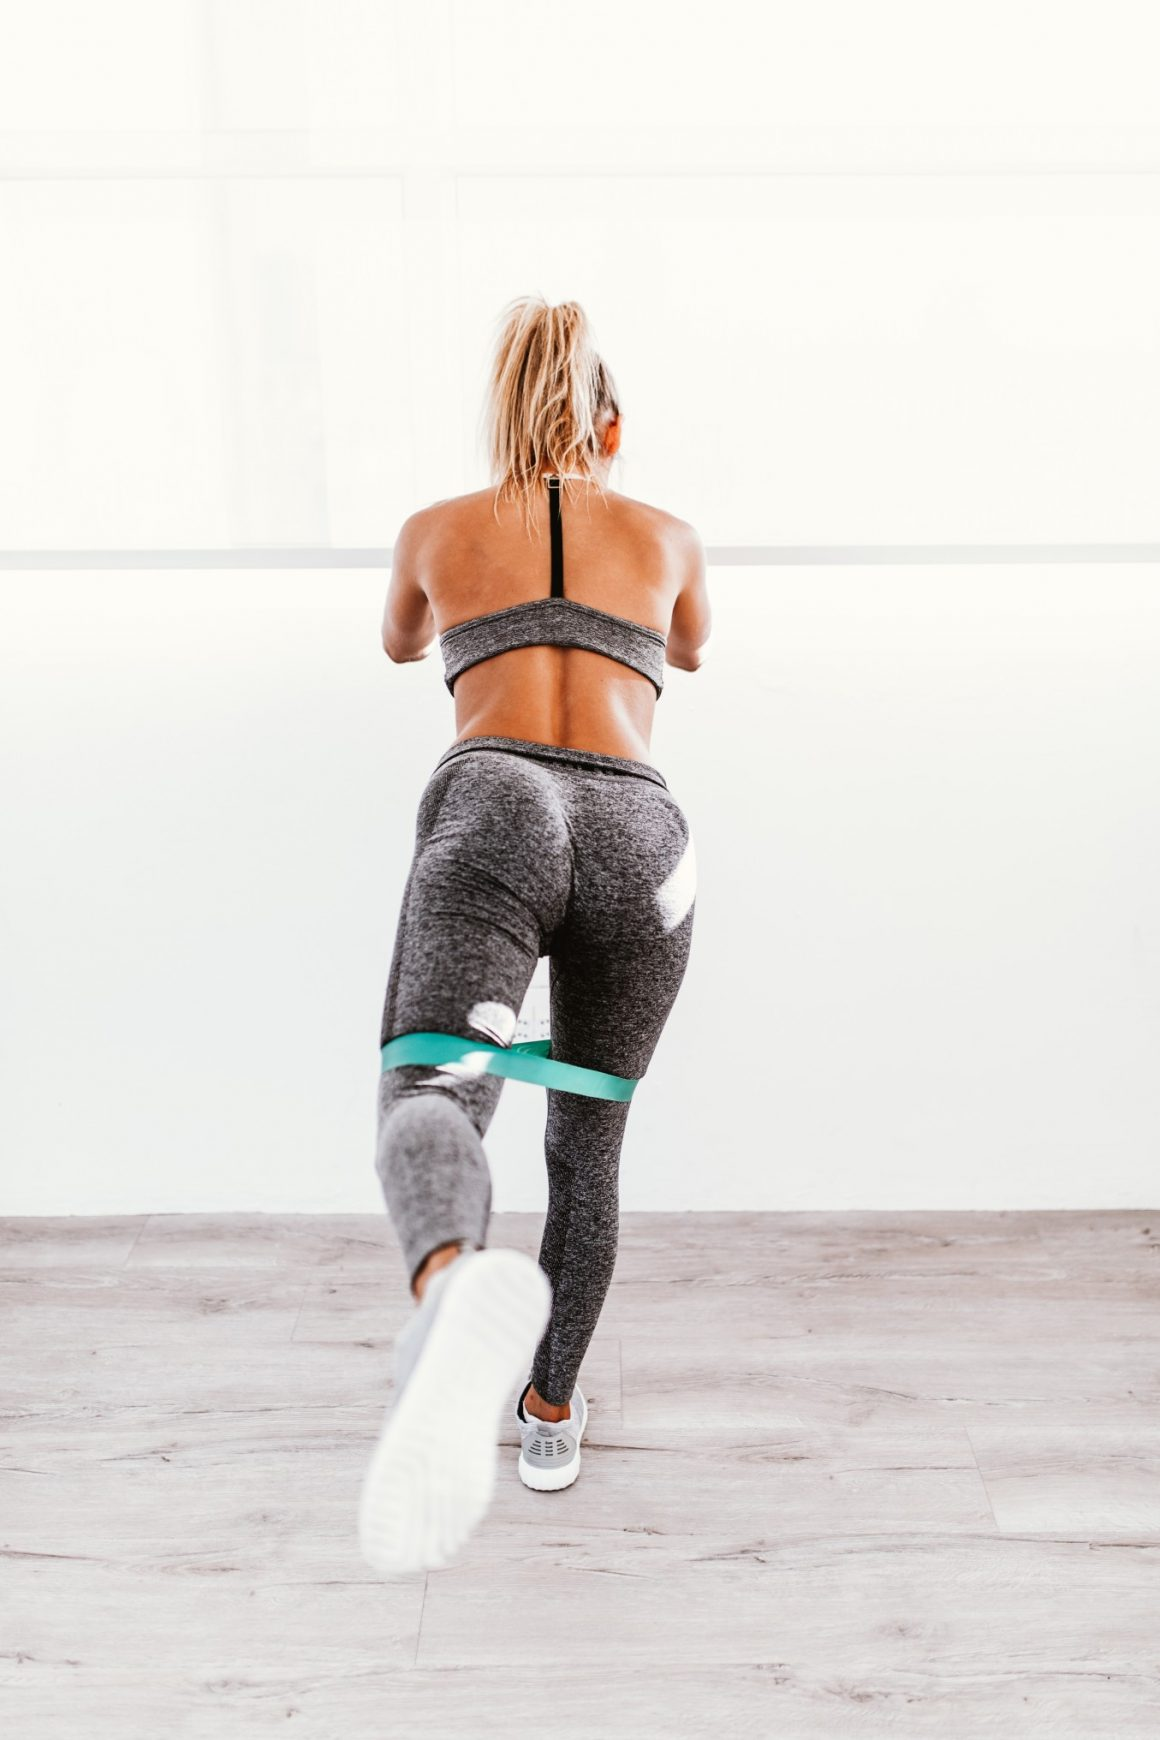 Using Props To Change Up Workout Routine